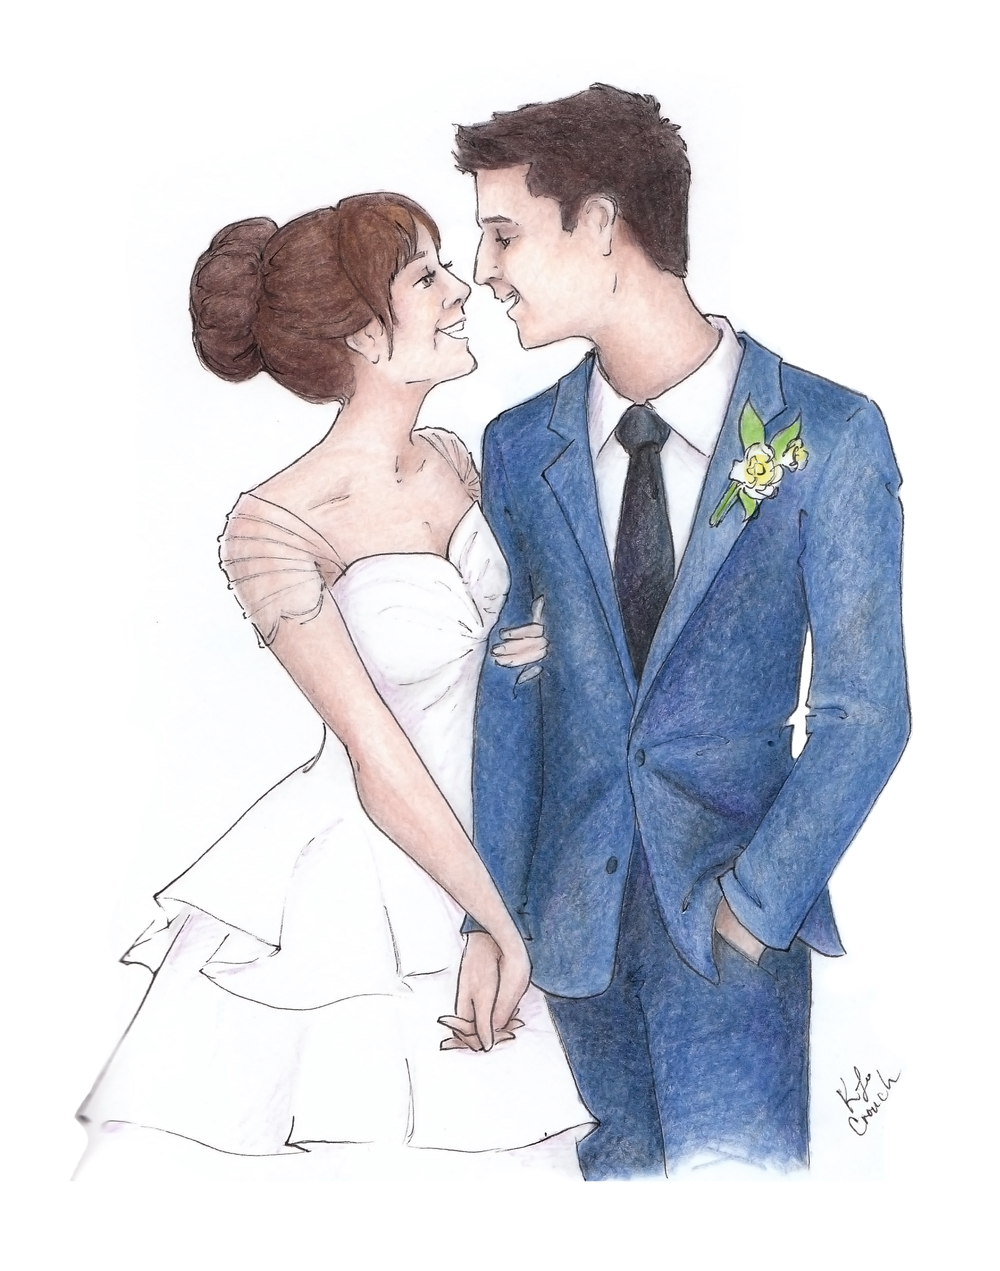 This playful bridal portrait is the perfect anniversary gift for the fun loving couple! Hand illustrated by Katrina of Blushed Design, this colored pencil or watercolor portrait will be a treasure for your family to hold for years to come #customportrait #bridalportrait #watercolorportrait